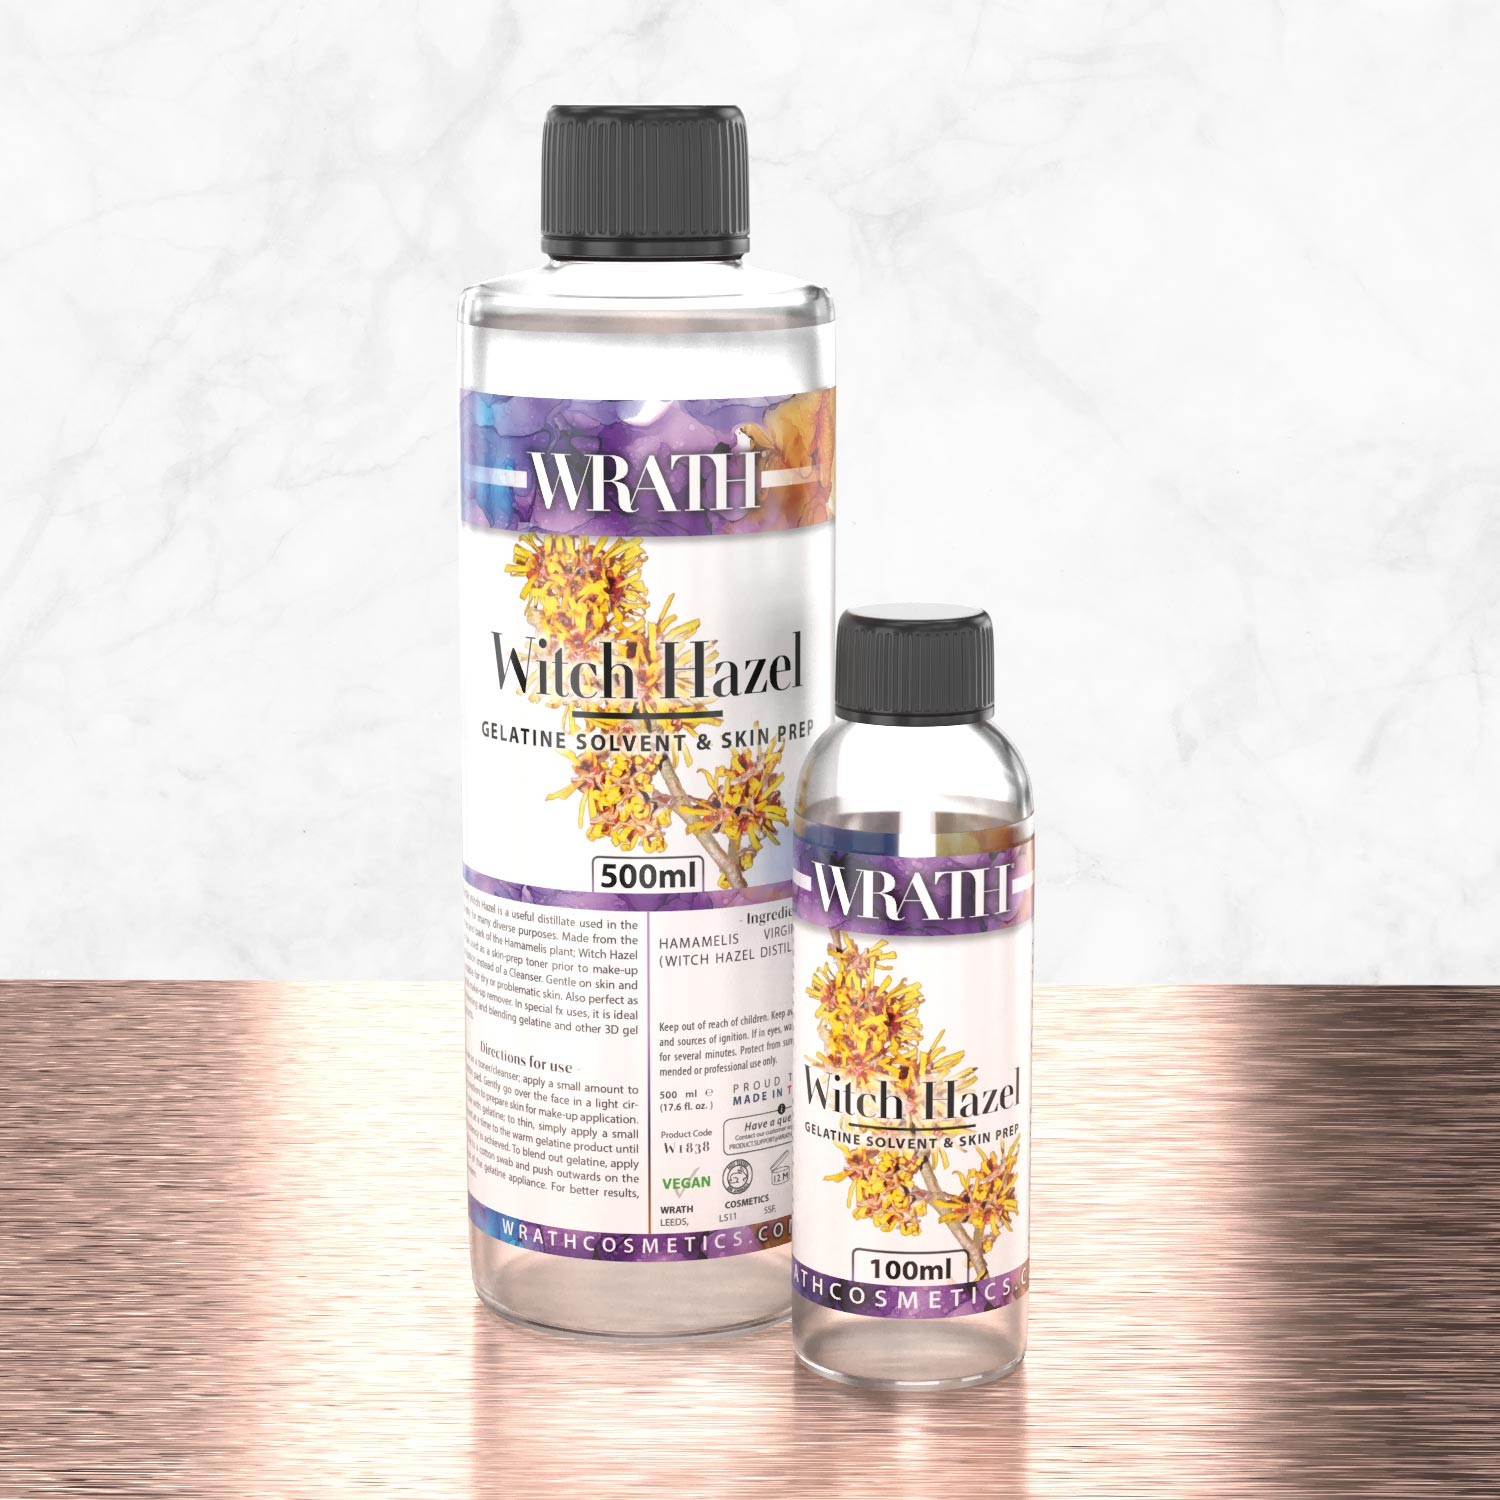 WRATH Witch Hazel Skin Prep & Gelatine Blender